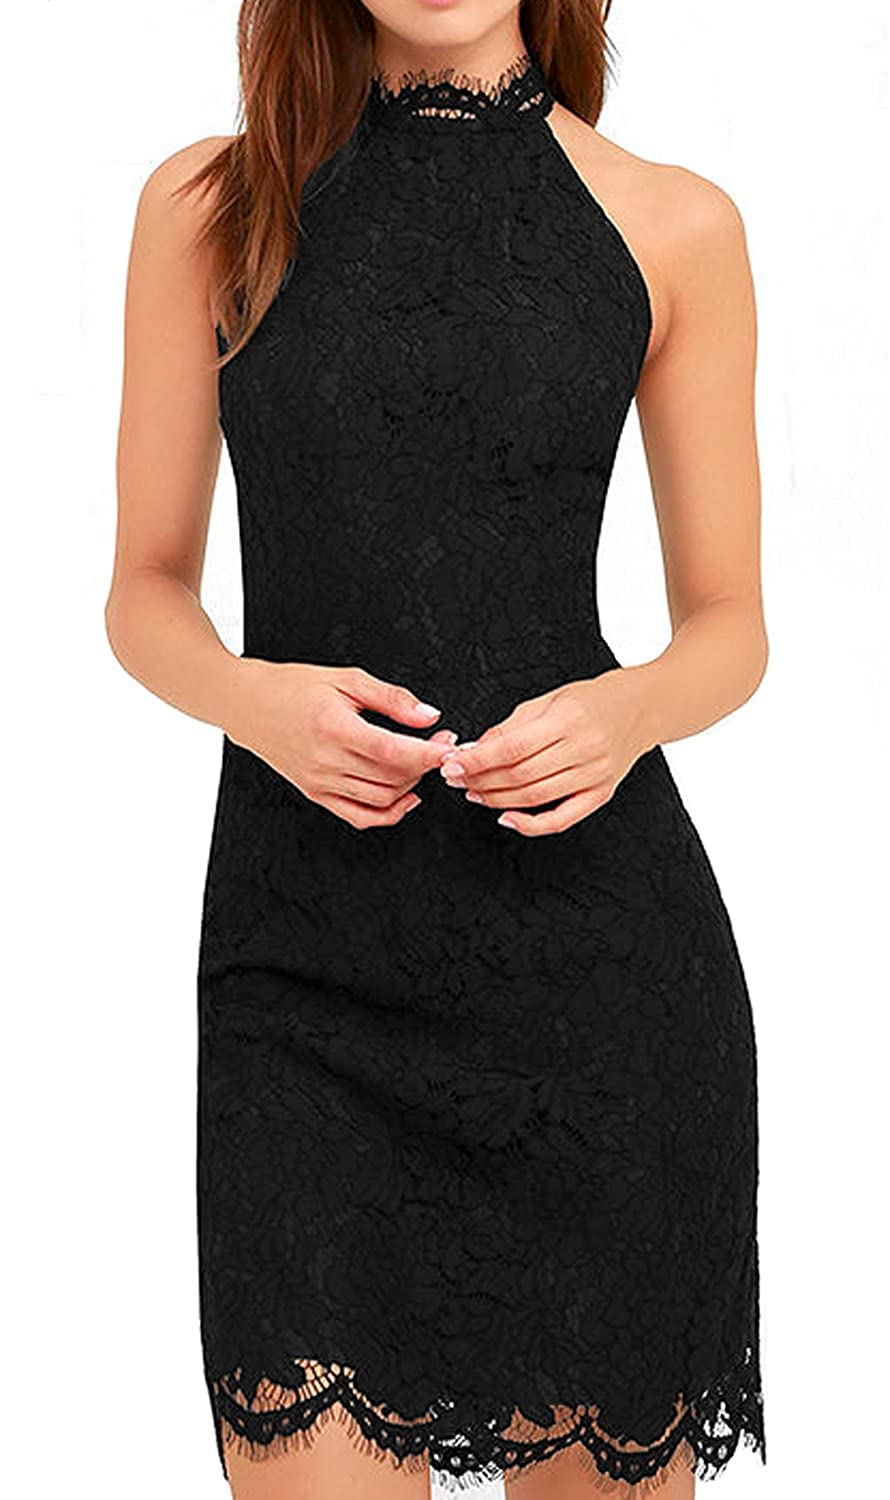 Zalalus Women\'s Cocktail Dress High Neck Lace Dresses For Special ...